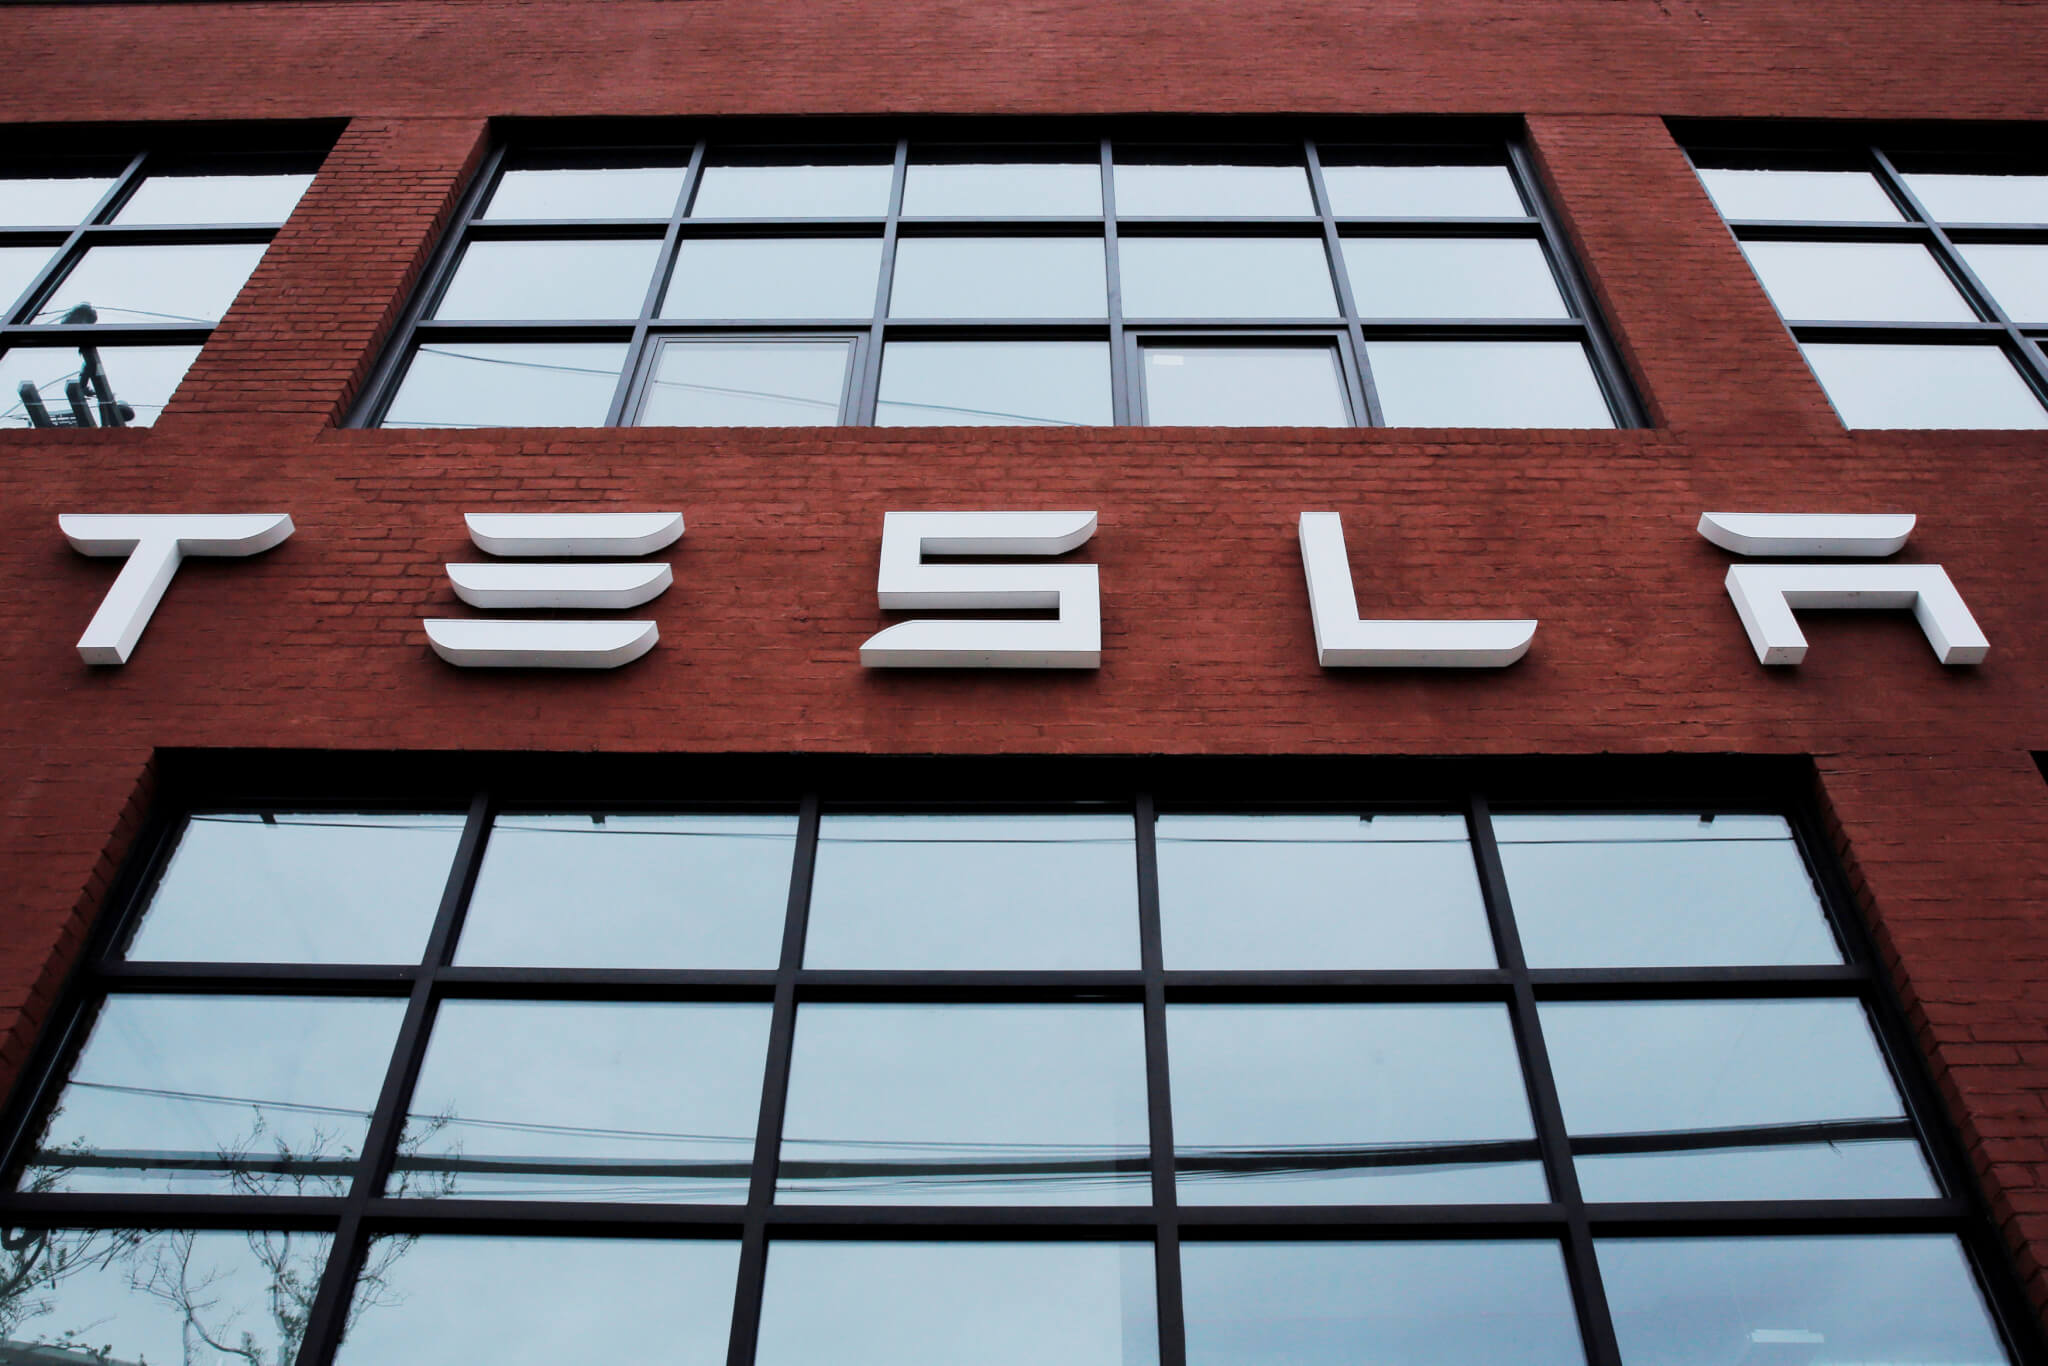 Tesla's Injury Rate One-third Higher than Industry Average, Says Worker Advocacy Group